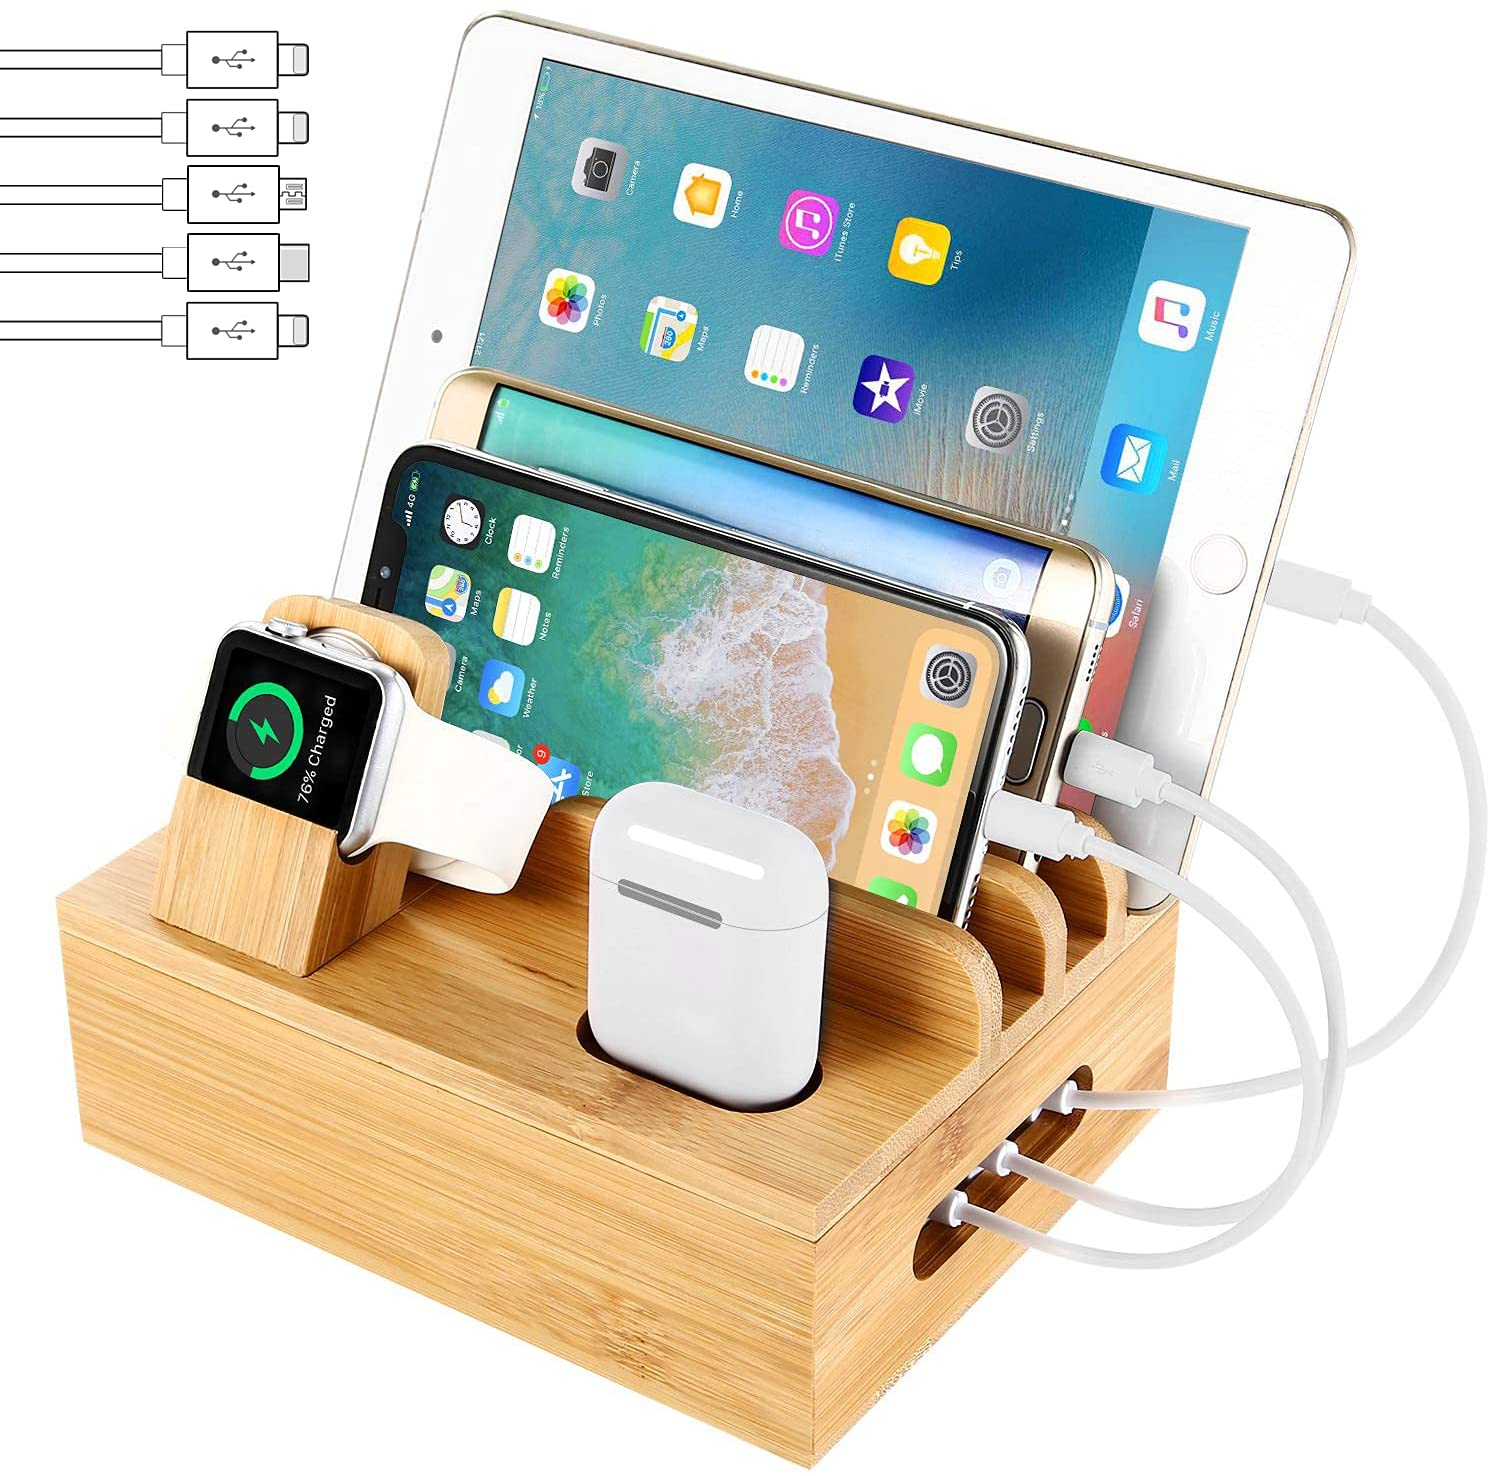 Bamboo Charging Station Dock for 4/5 / 6 Ports USB Charger with 5 Charging Cables Included, Desktop Docking Station Organizer for Cellphone,Smart Watch,Tablet(No Power Supply)